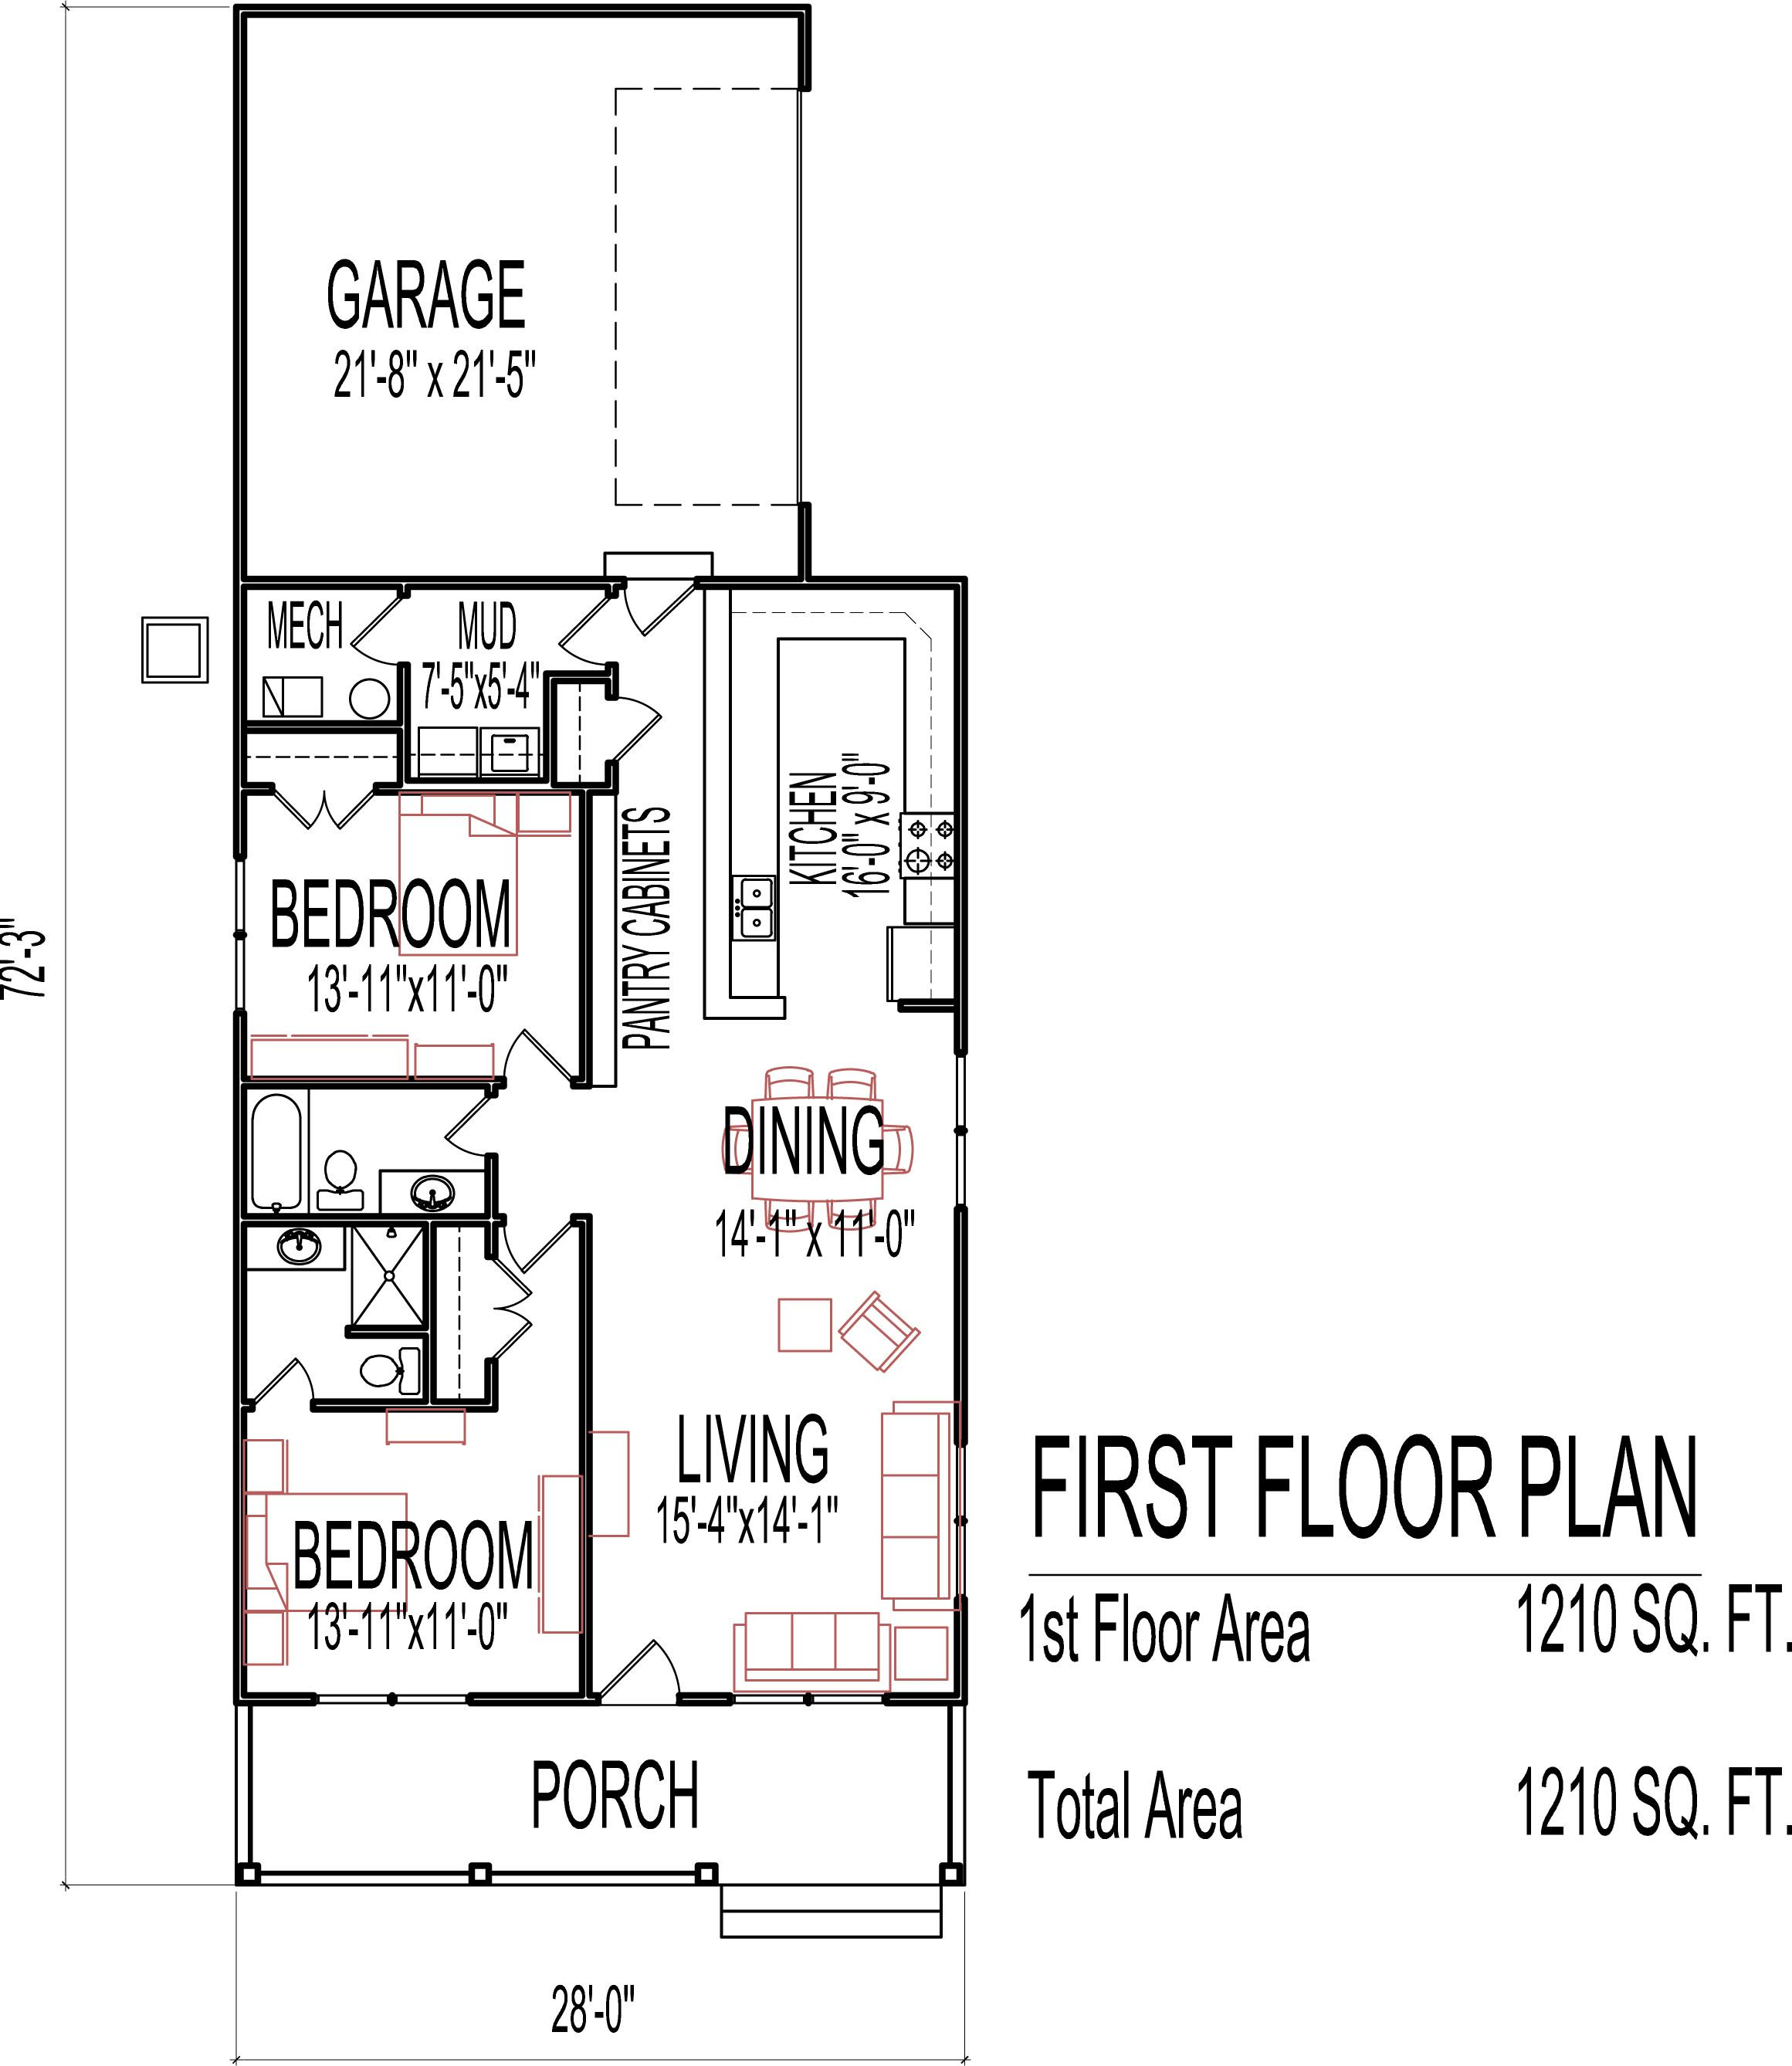 Small low cost economical 2 bedroom 2 bath 1200 sq ft Single story floor plans with 3 car garage